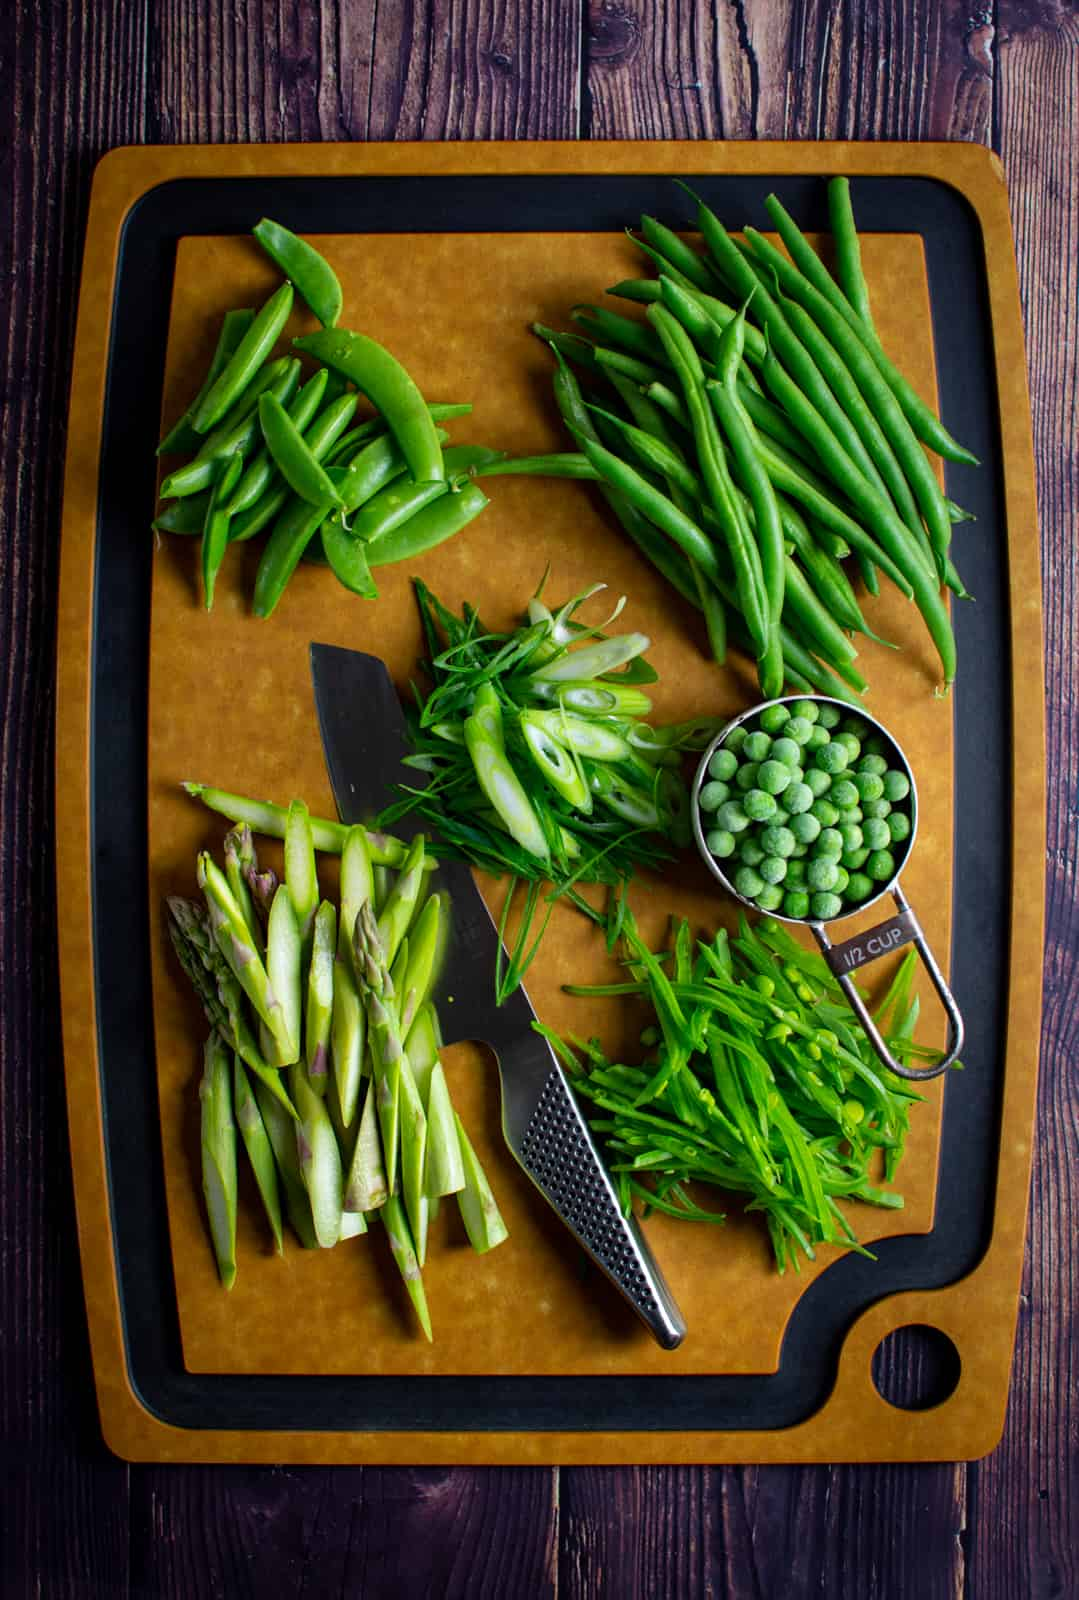 mixed green vegetables on chopping board